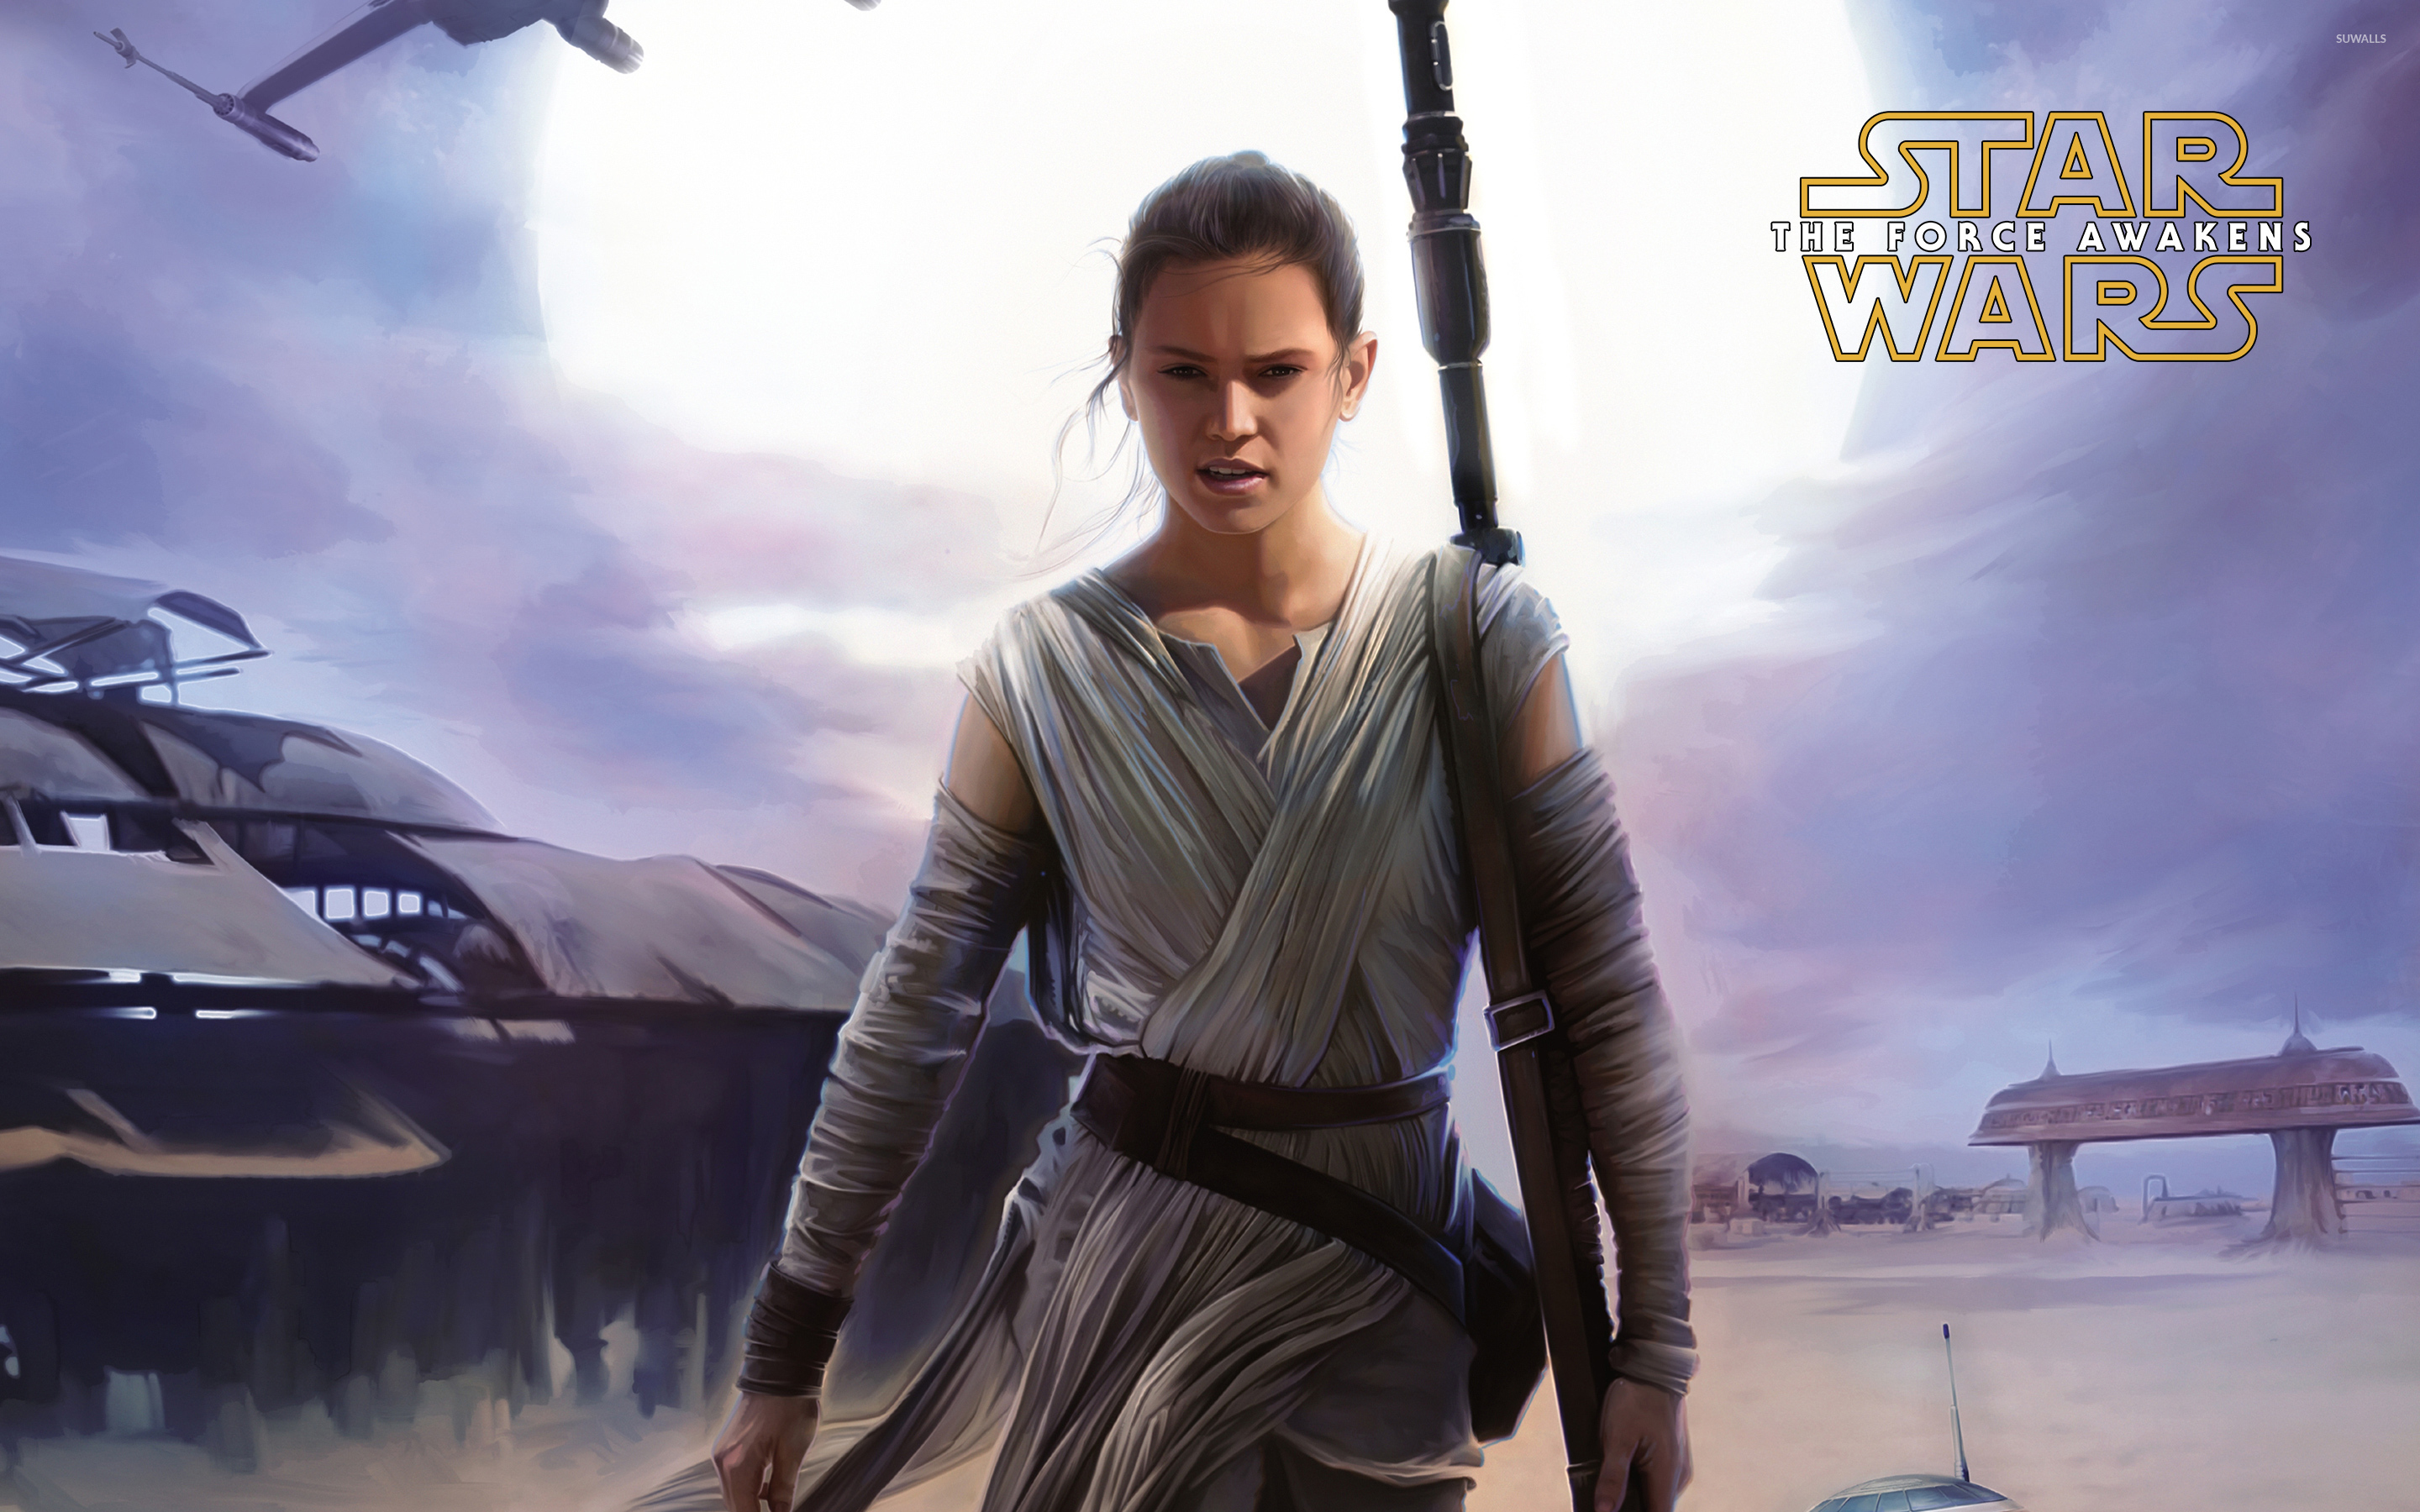 Rey in Star Wars: The Force Awakens wallpaper